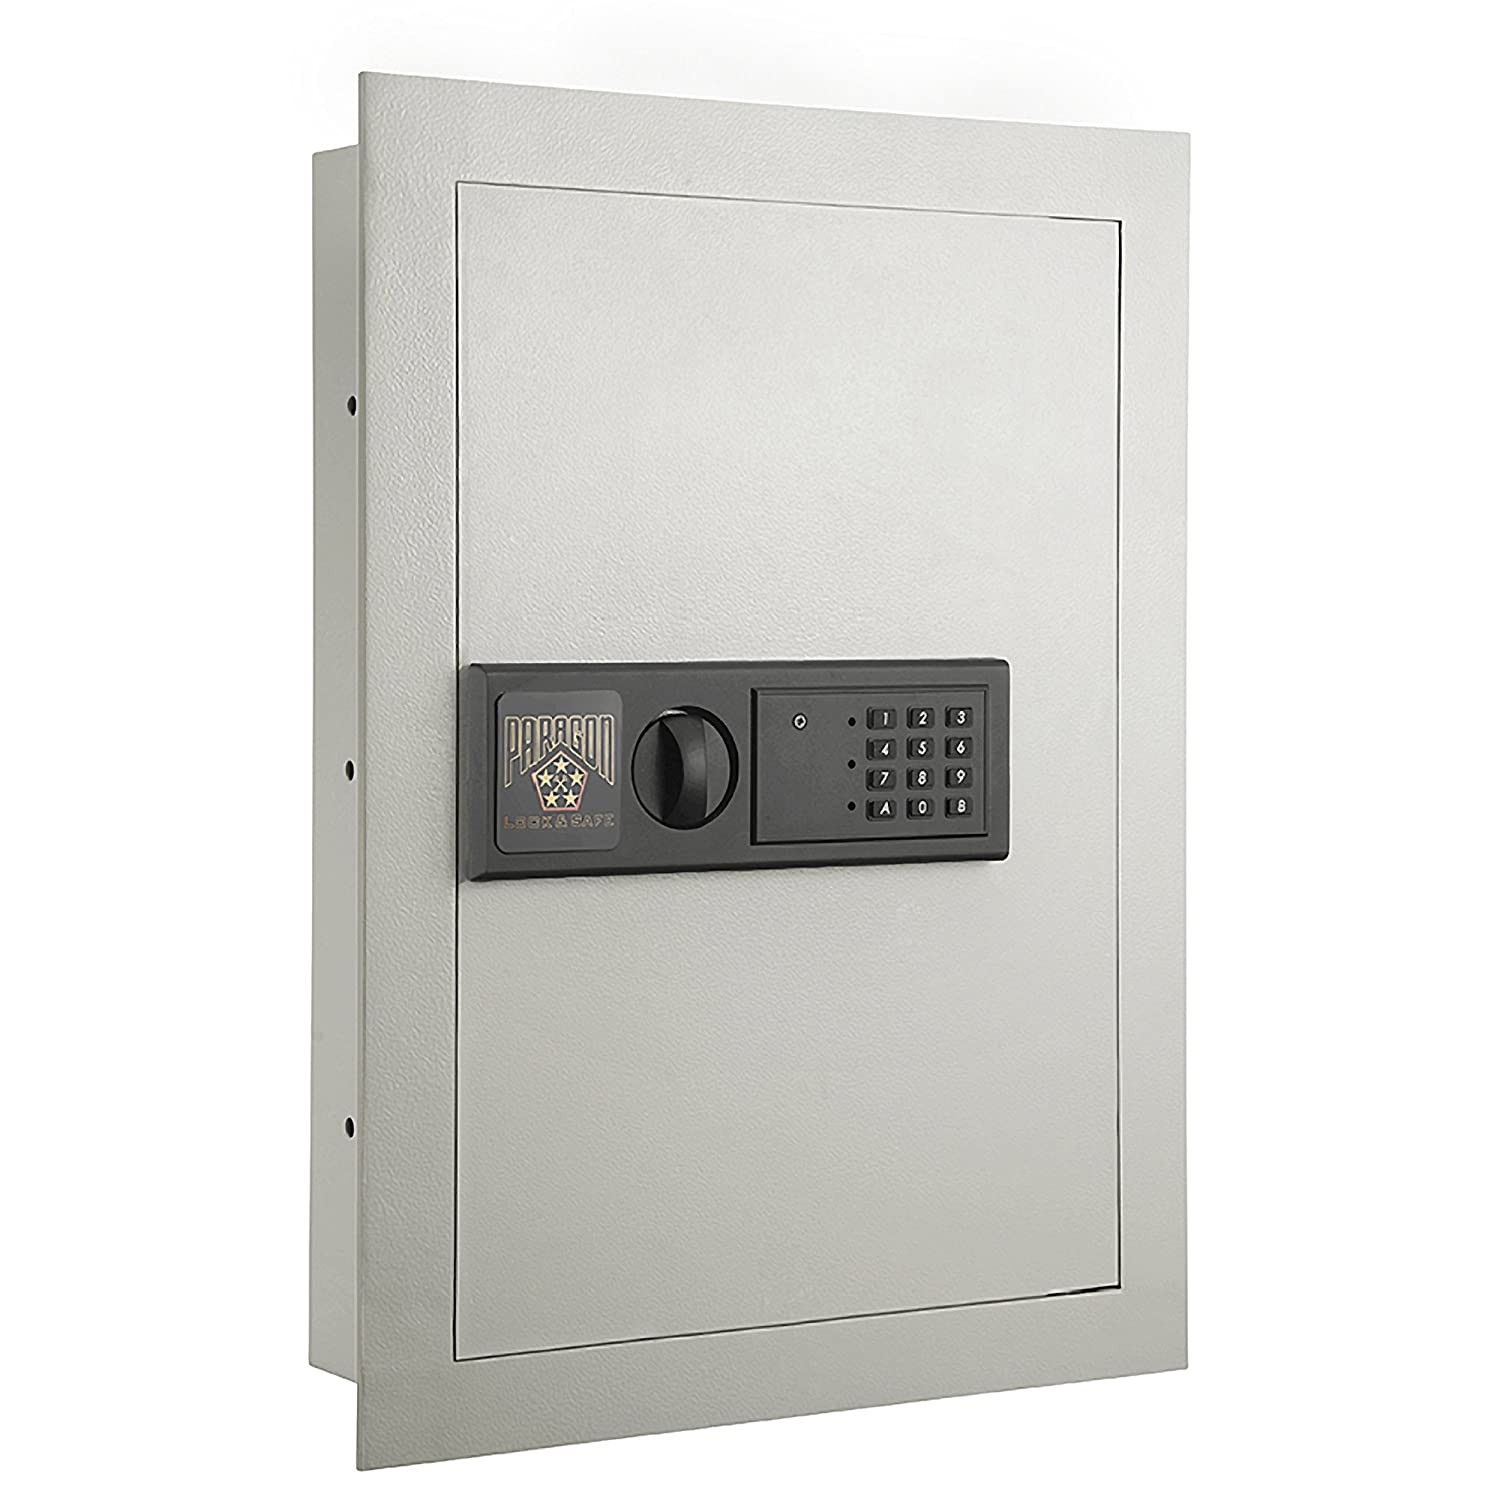 Paragon 7750 Electronic Wall Lock and Safe 83 CF Hidden In Wall